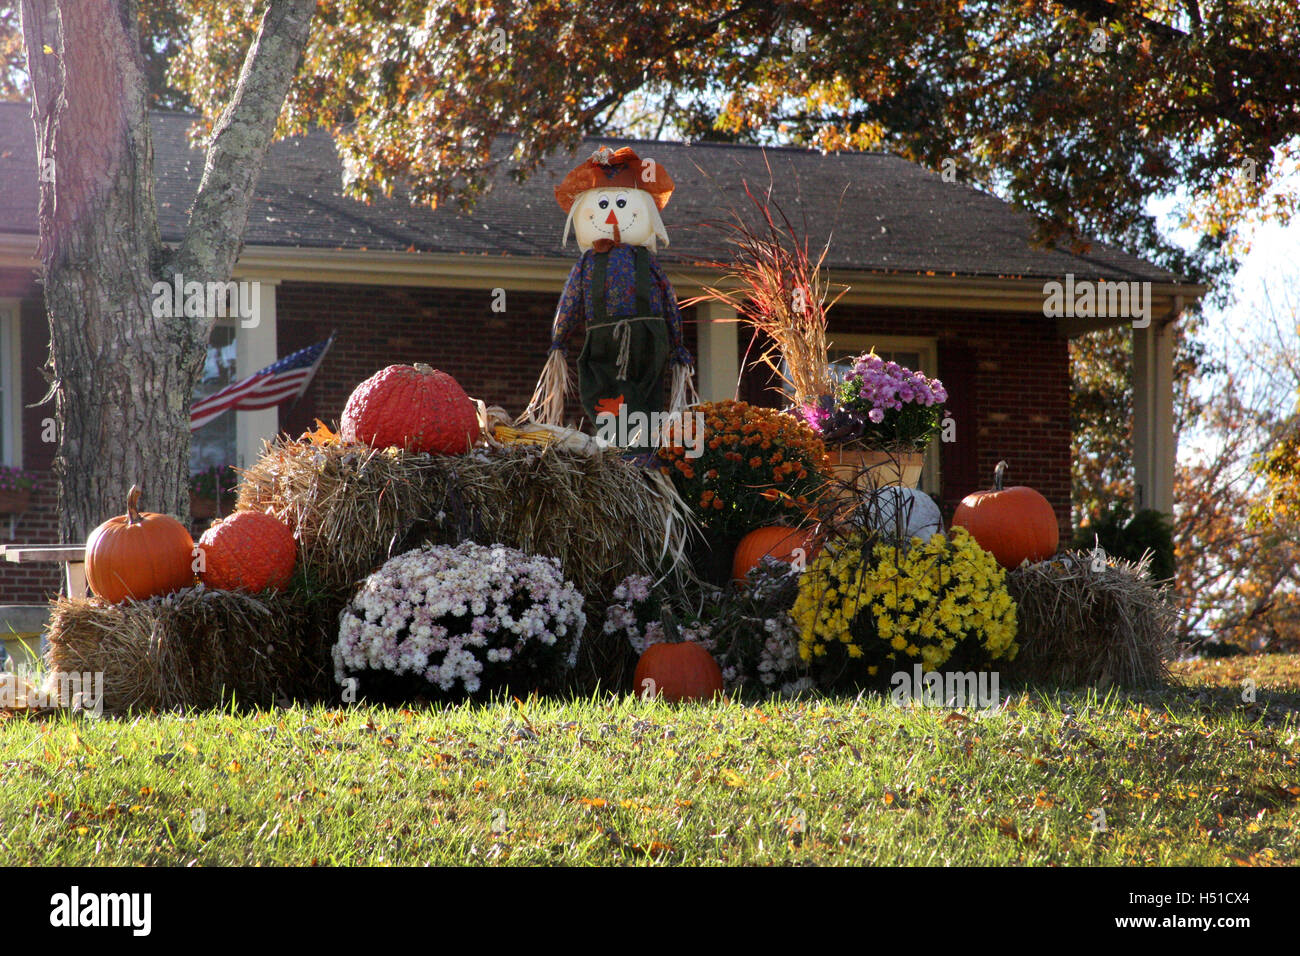 Outdoor Fall Decoration With Scarecrow Pumpkins Hay And Mums Stock